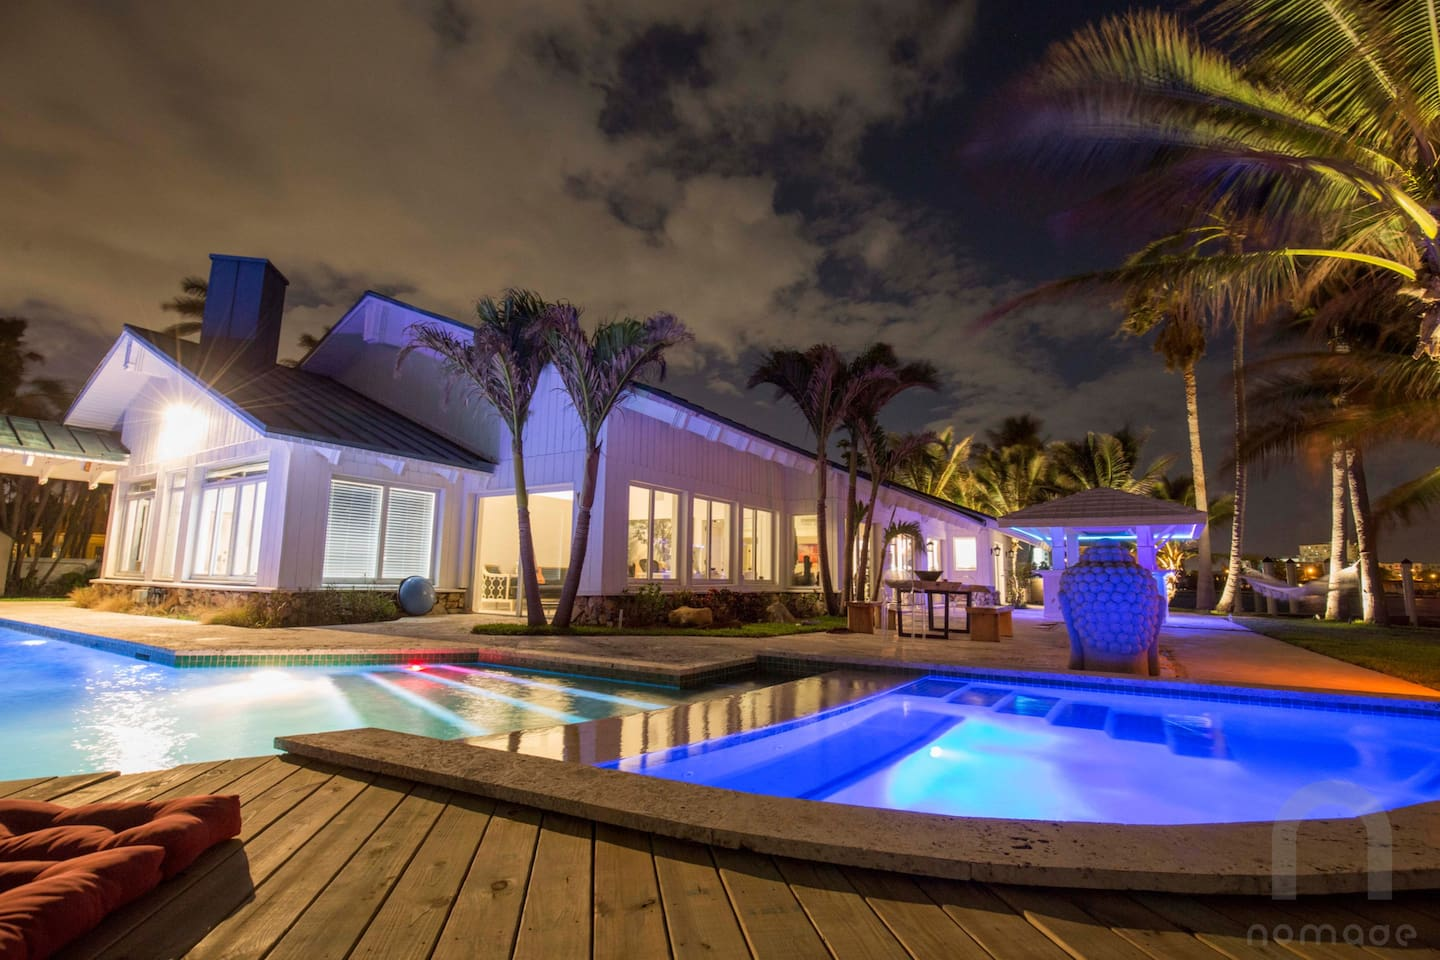 The property is simply magical at night